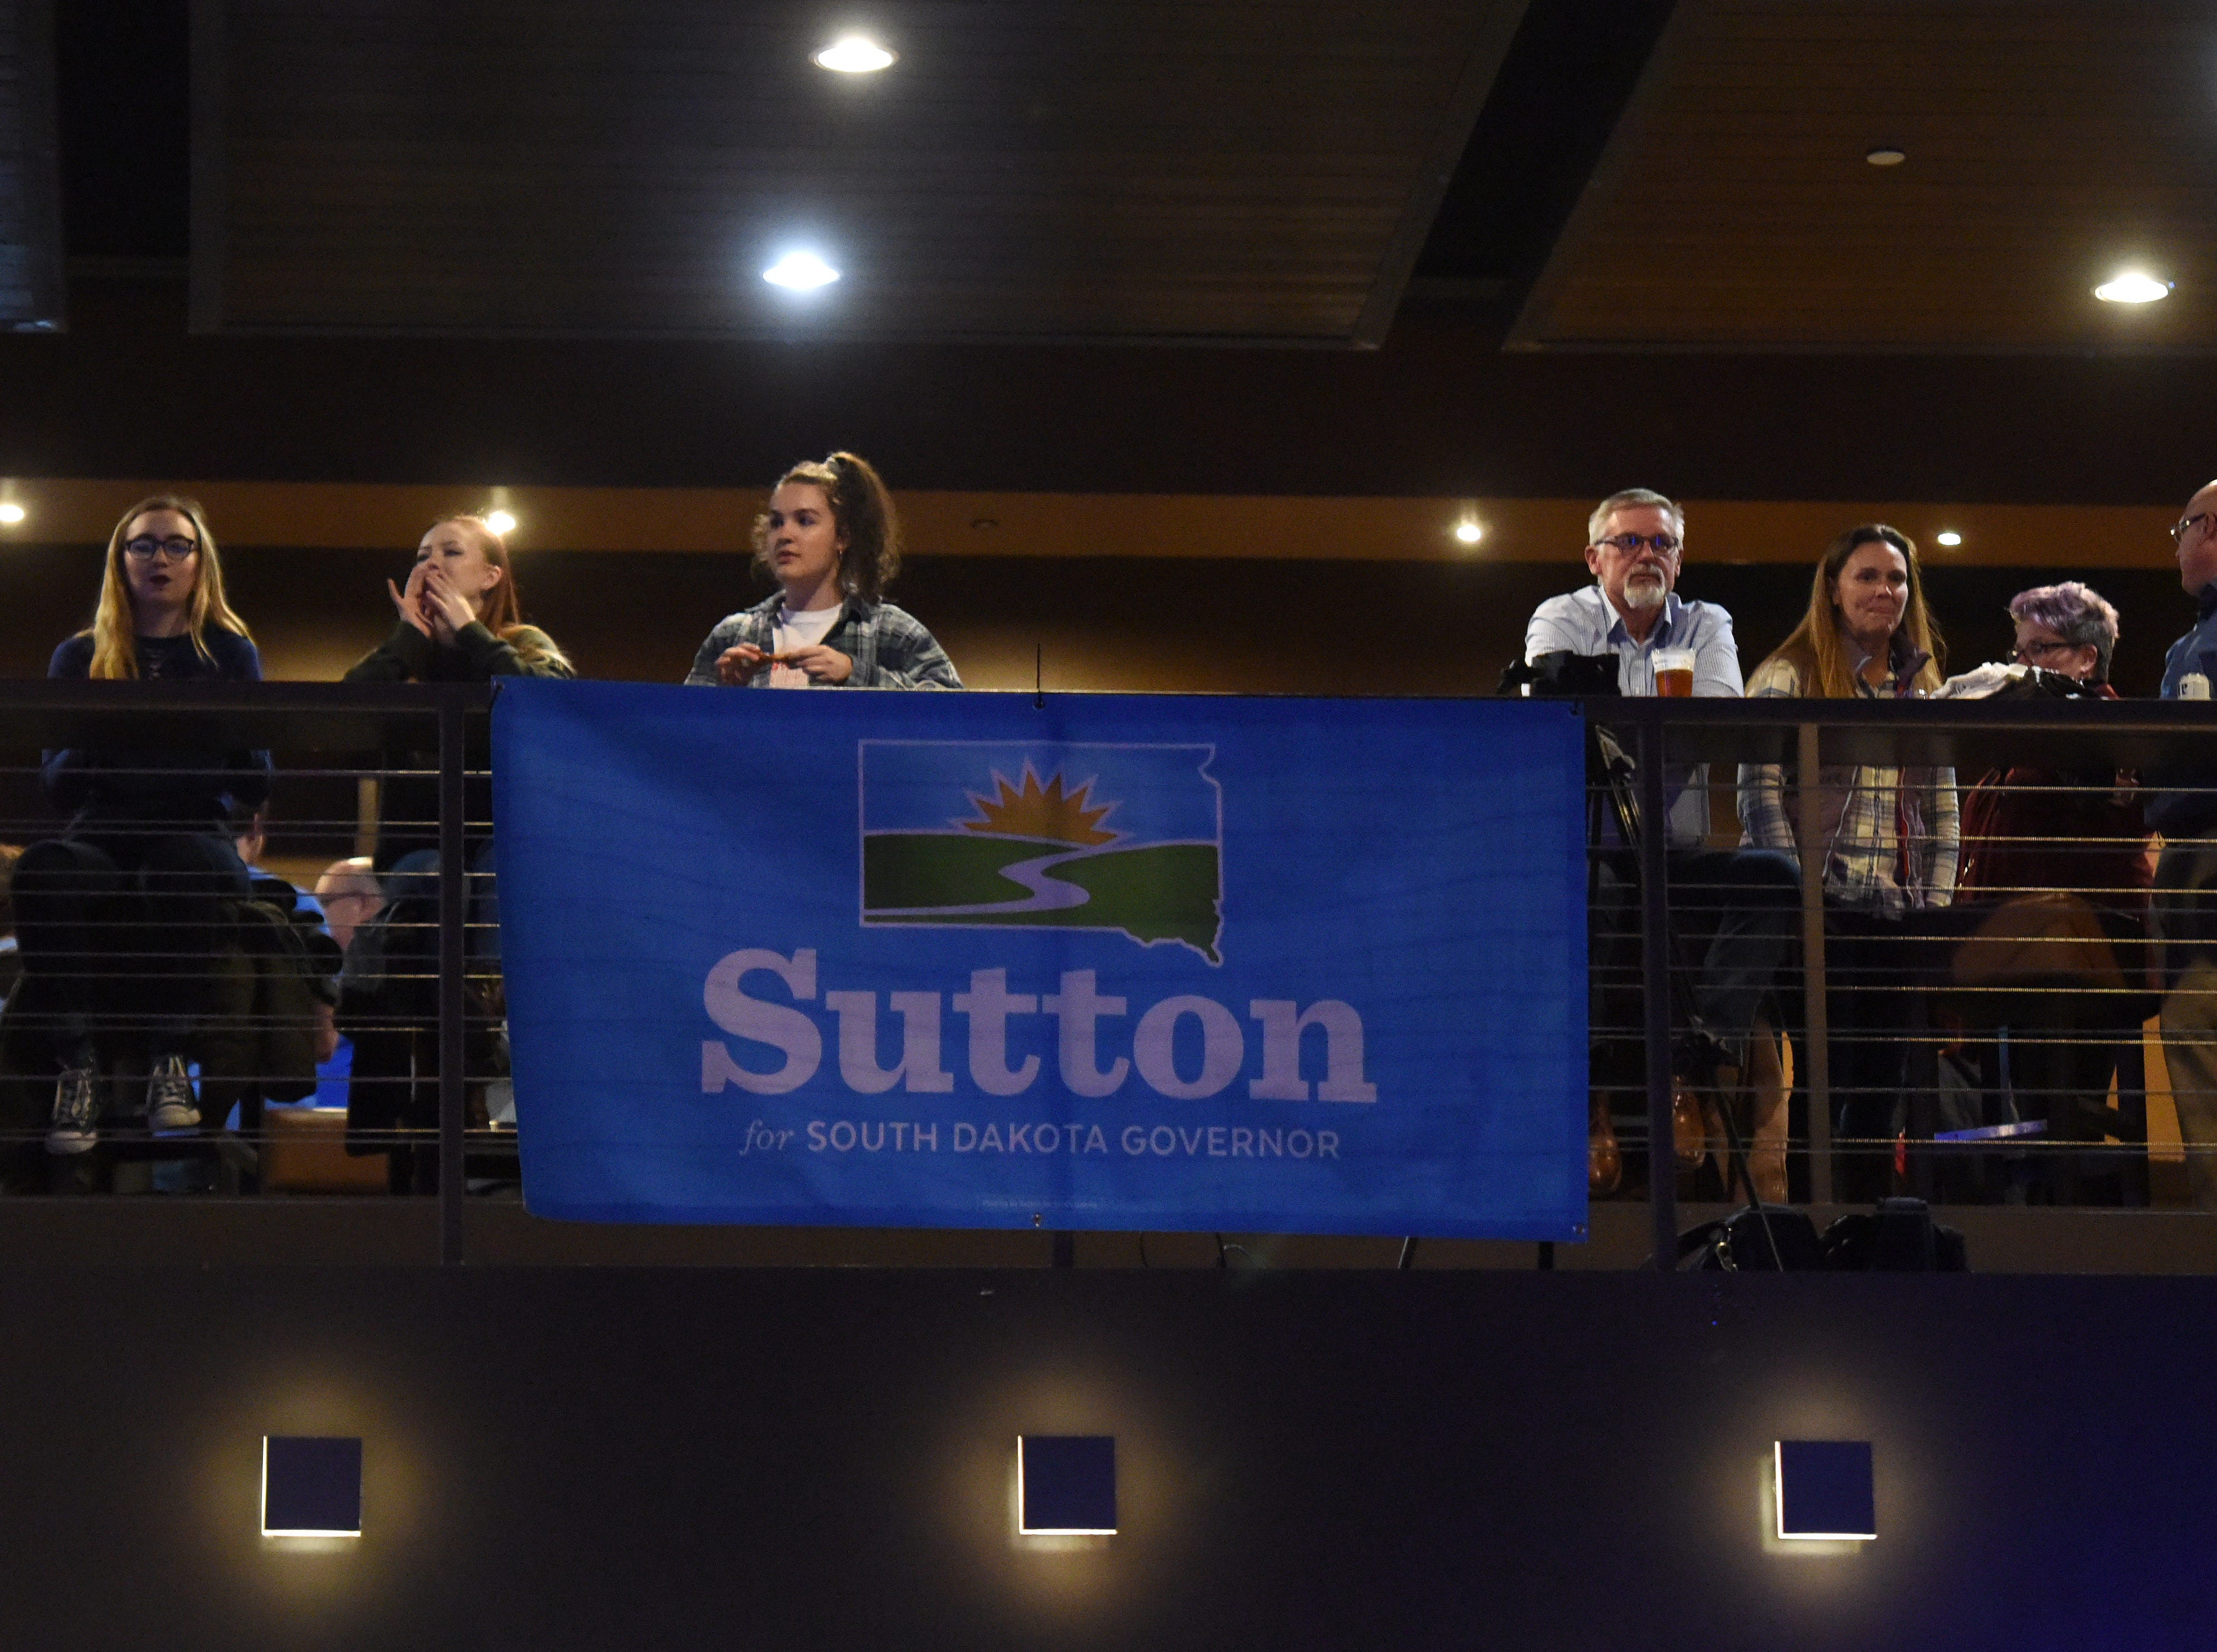 Supporters watch as results come in at the Democratic night party, Tuesday, Nov. 6, 2018 at The District in Sioux Falls, S.D.